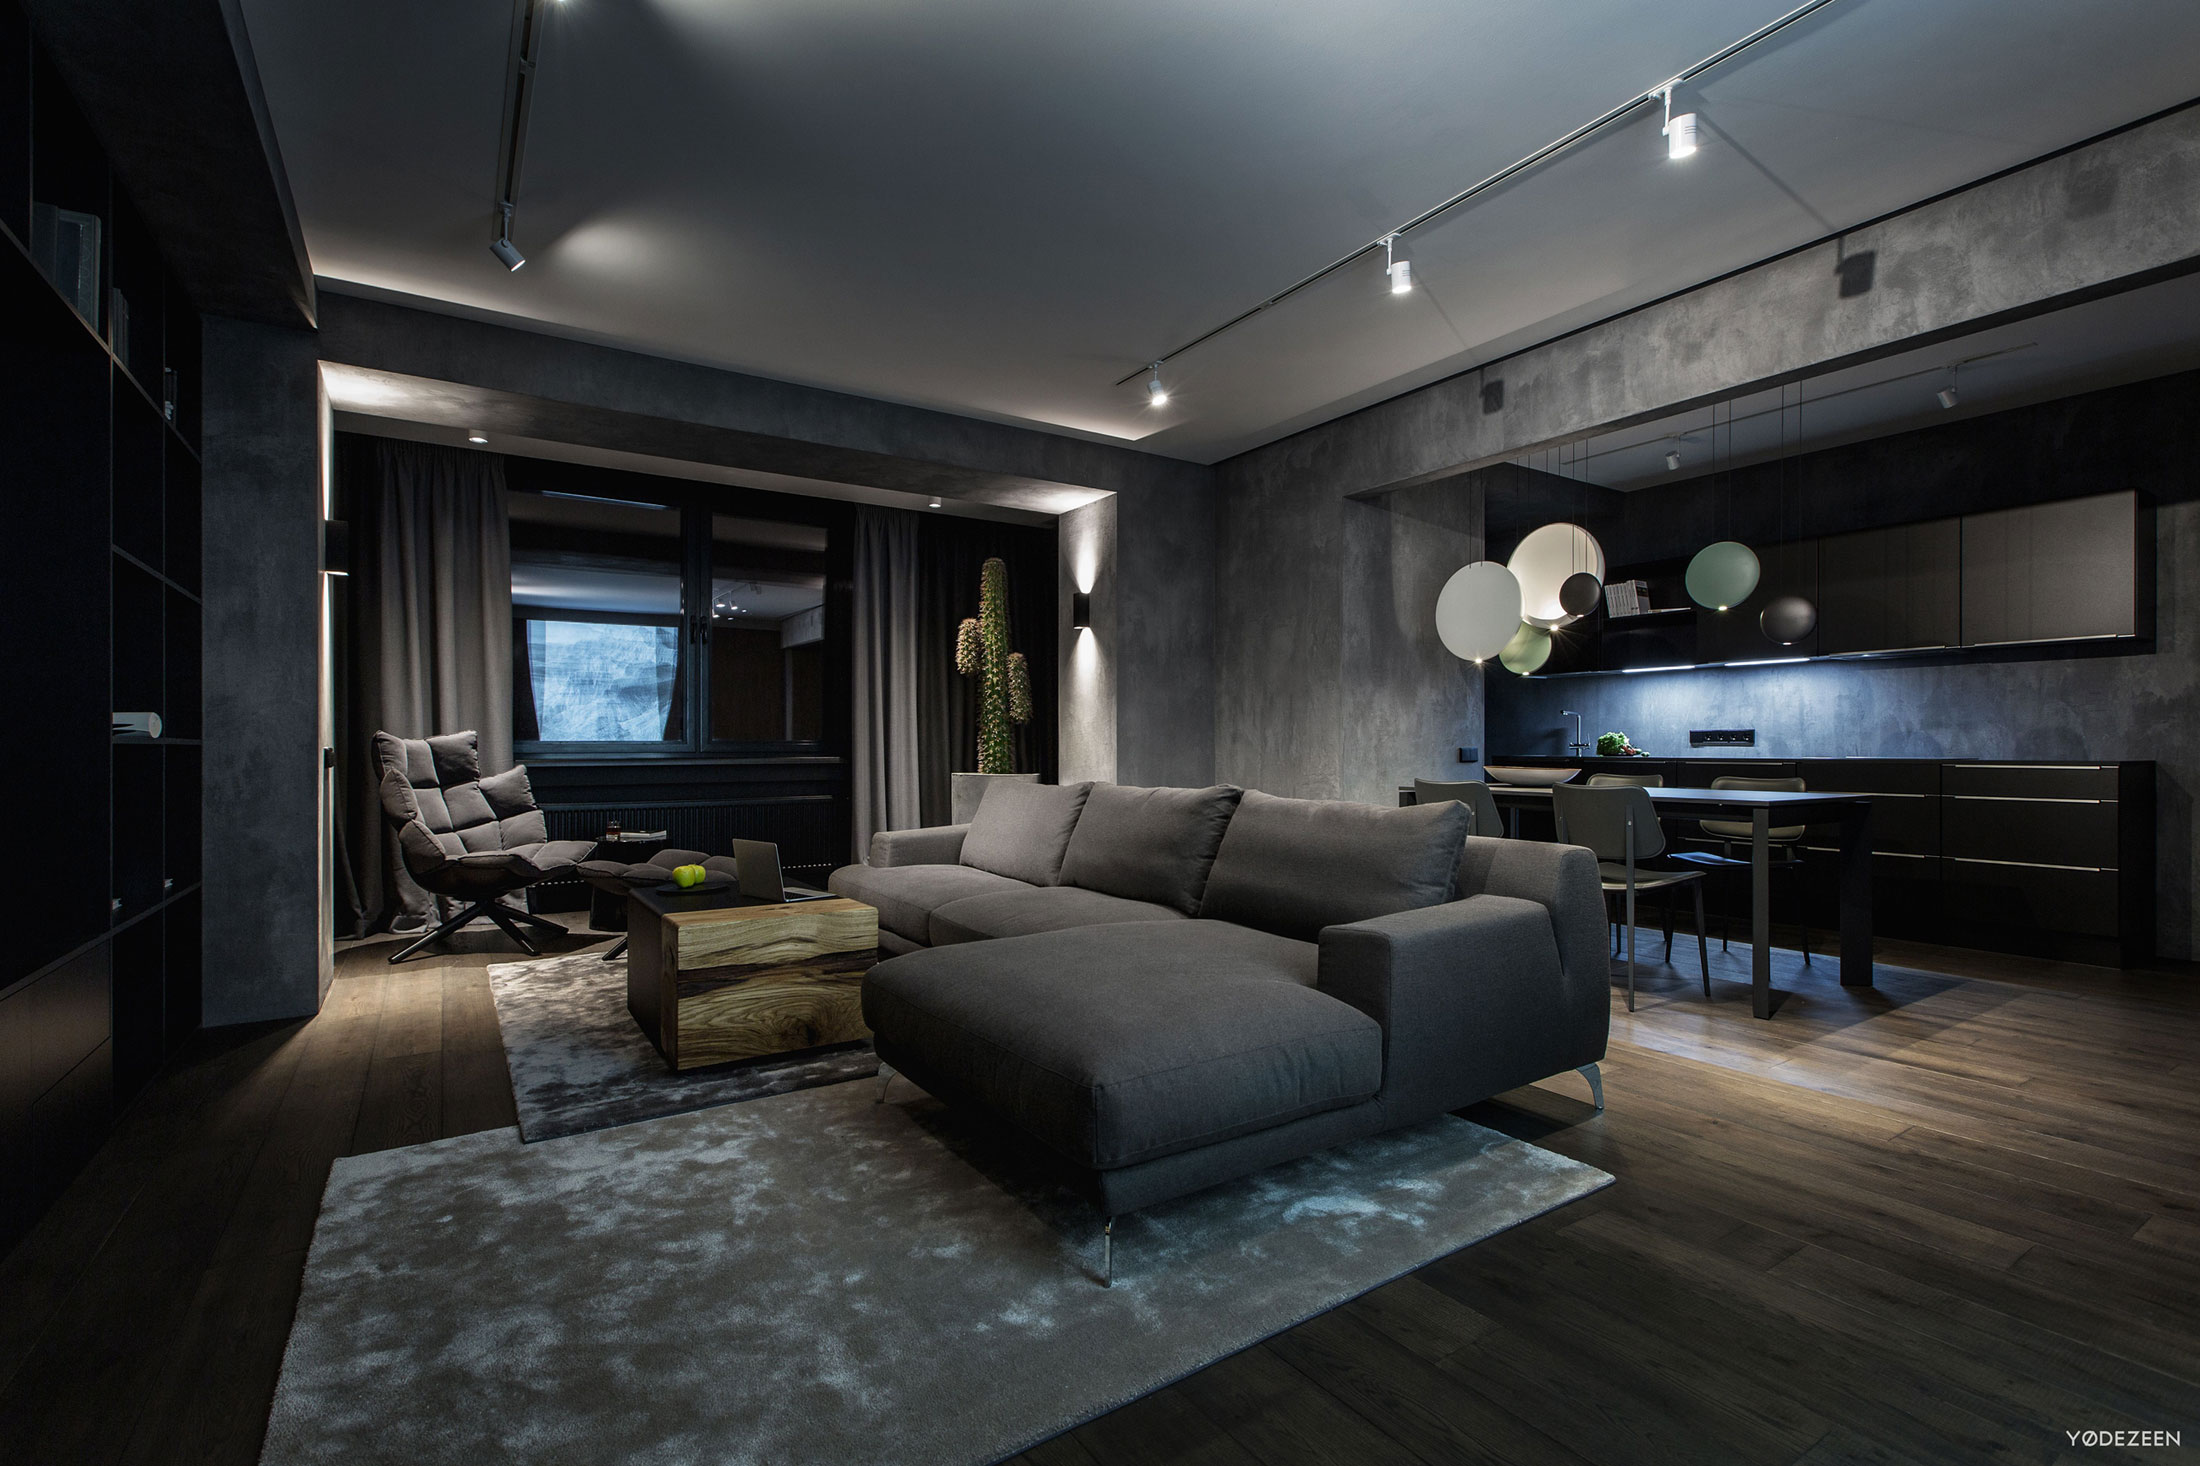 A Modern Home Interior in Kiev, Ukraine